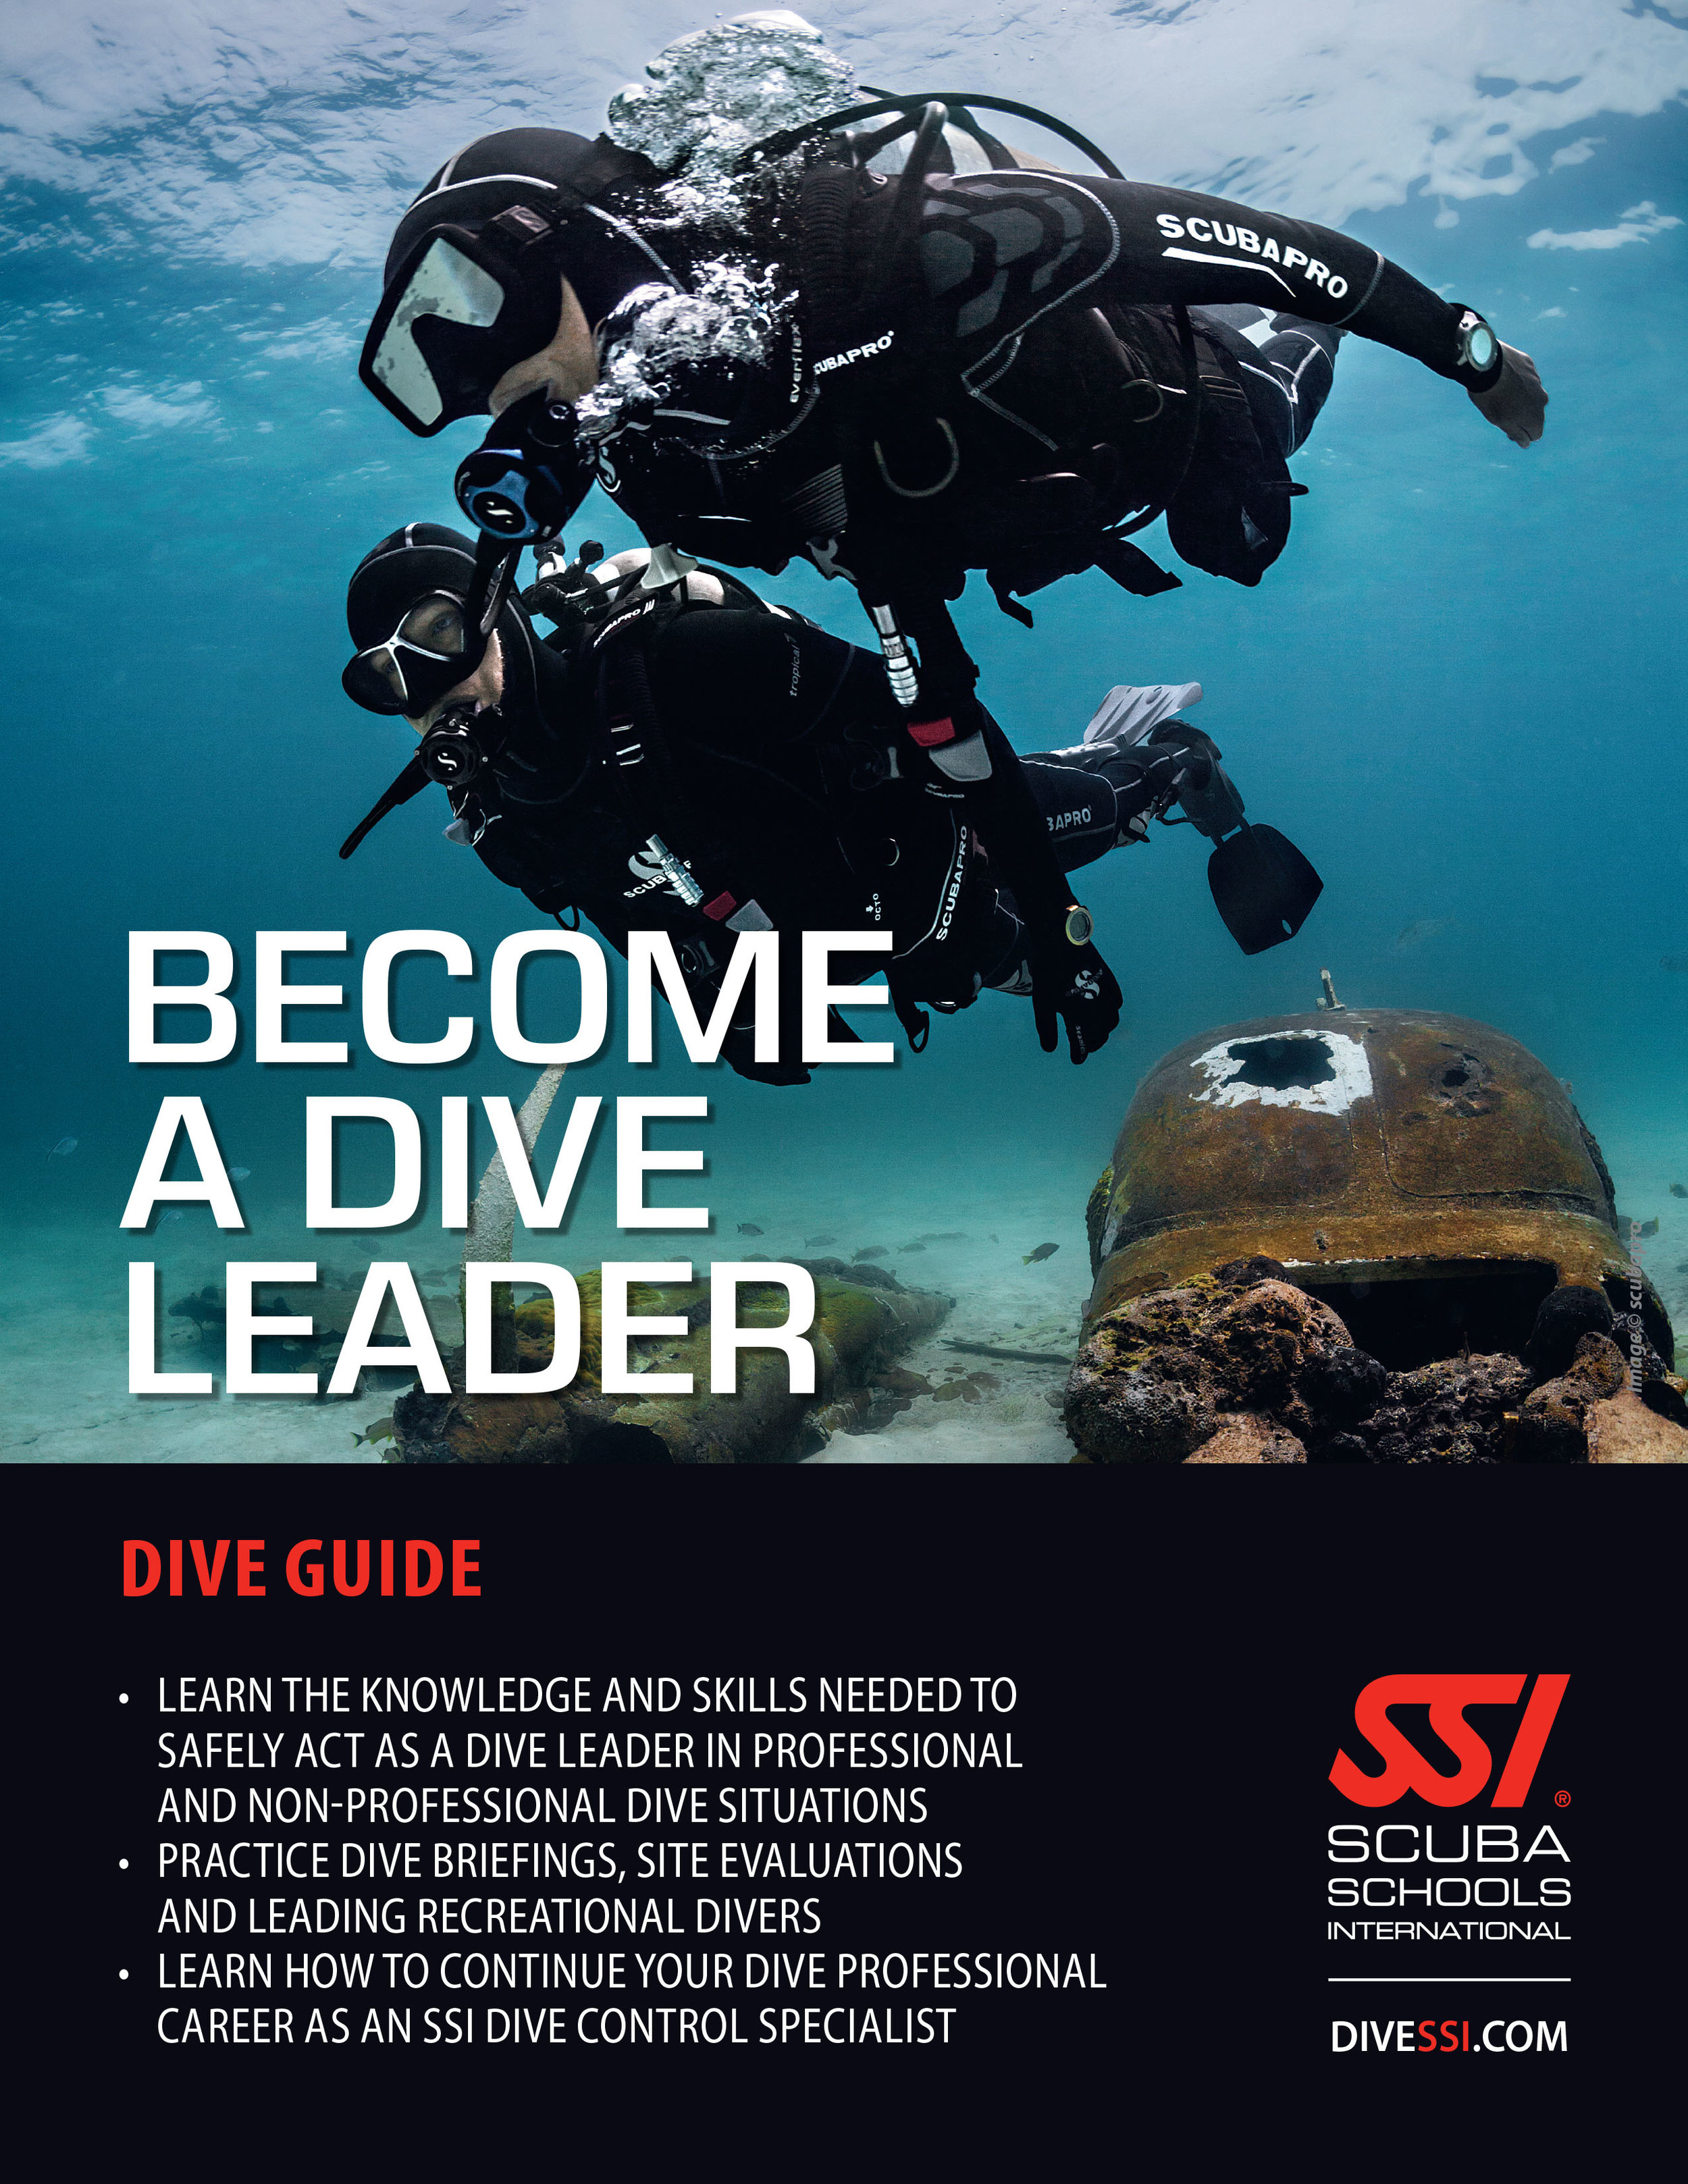 become a dive pro and help others enjoy the underwater world you've come to love as a dive guide, dive master or instructor.